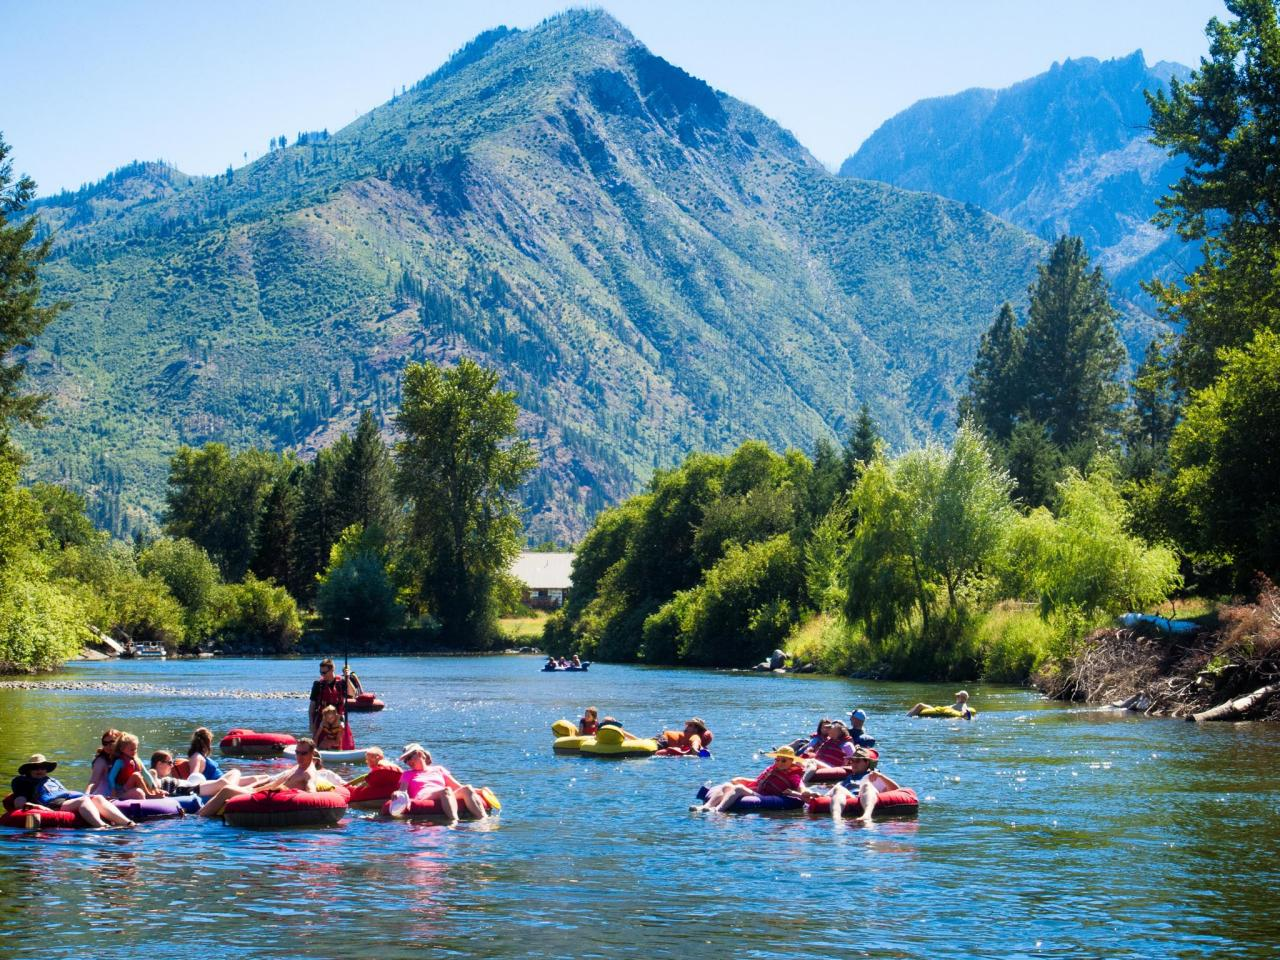 Best Places To Go River Tubing Travel Channel Blog Roam - Top 10 beautiful rivers in the world